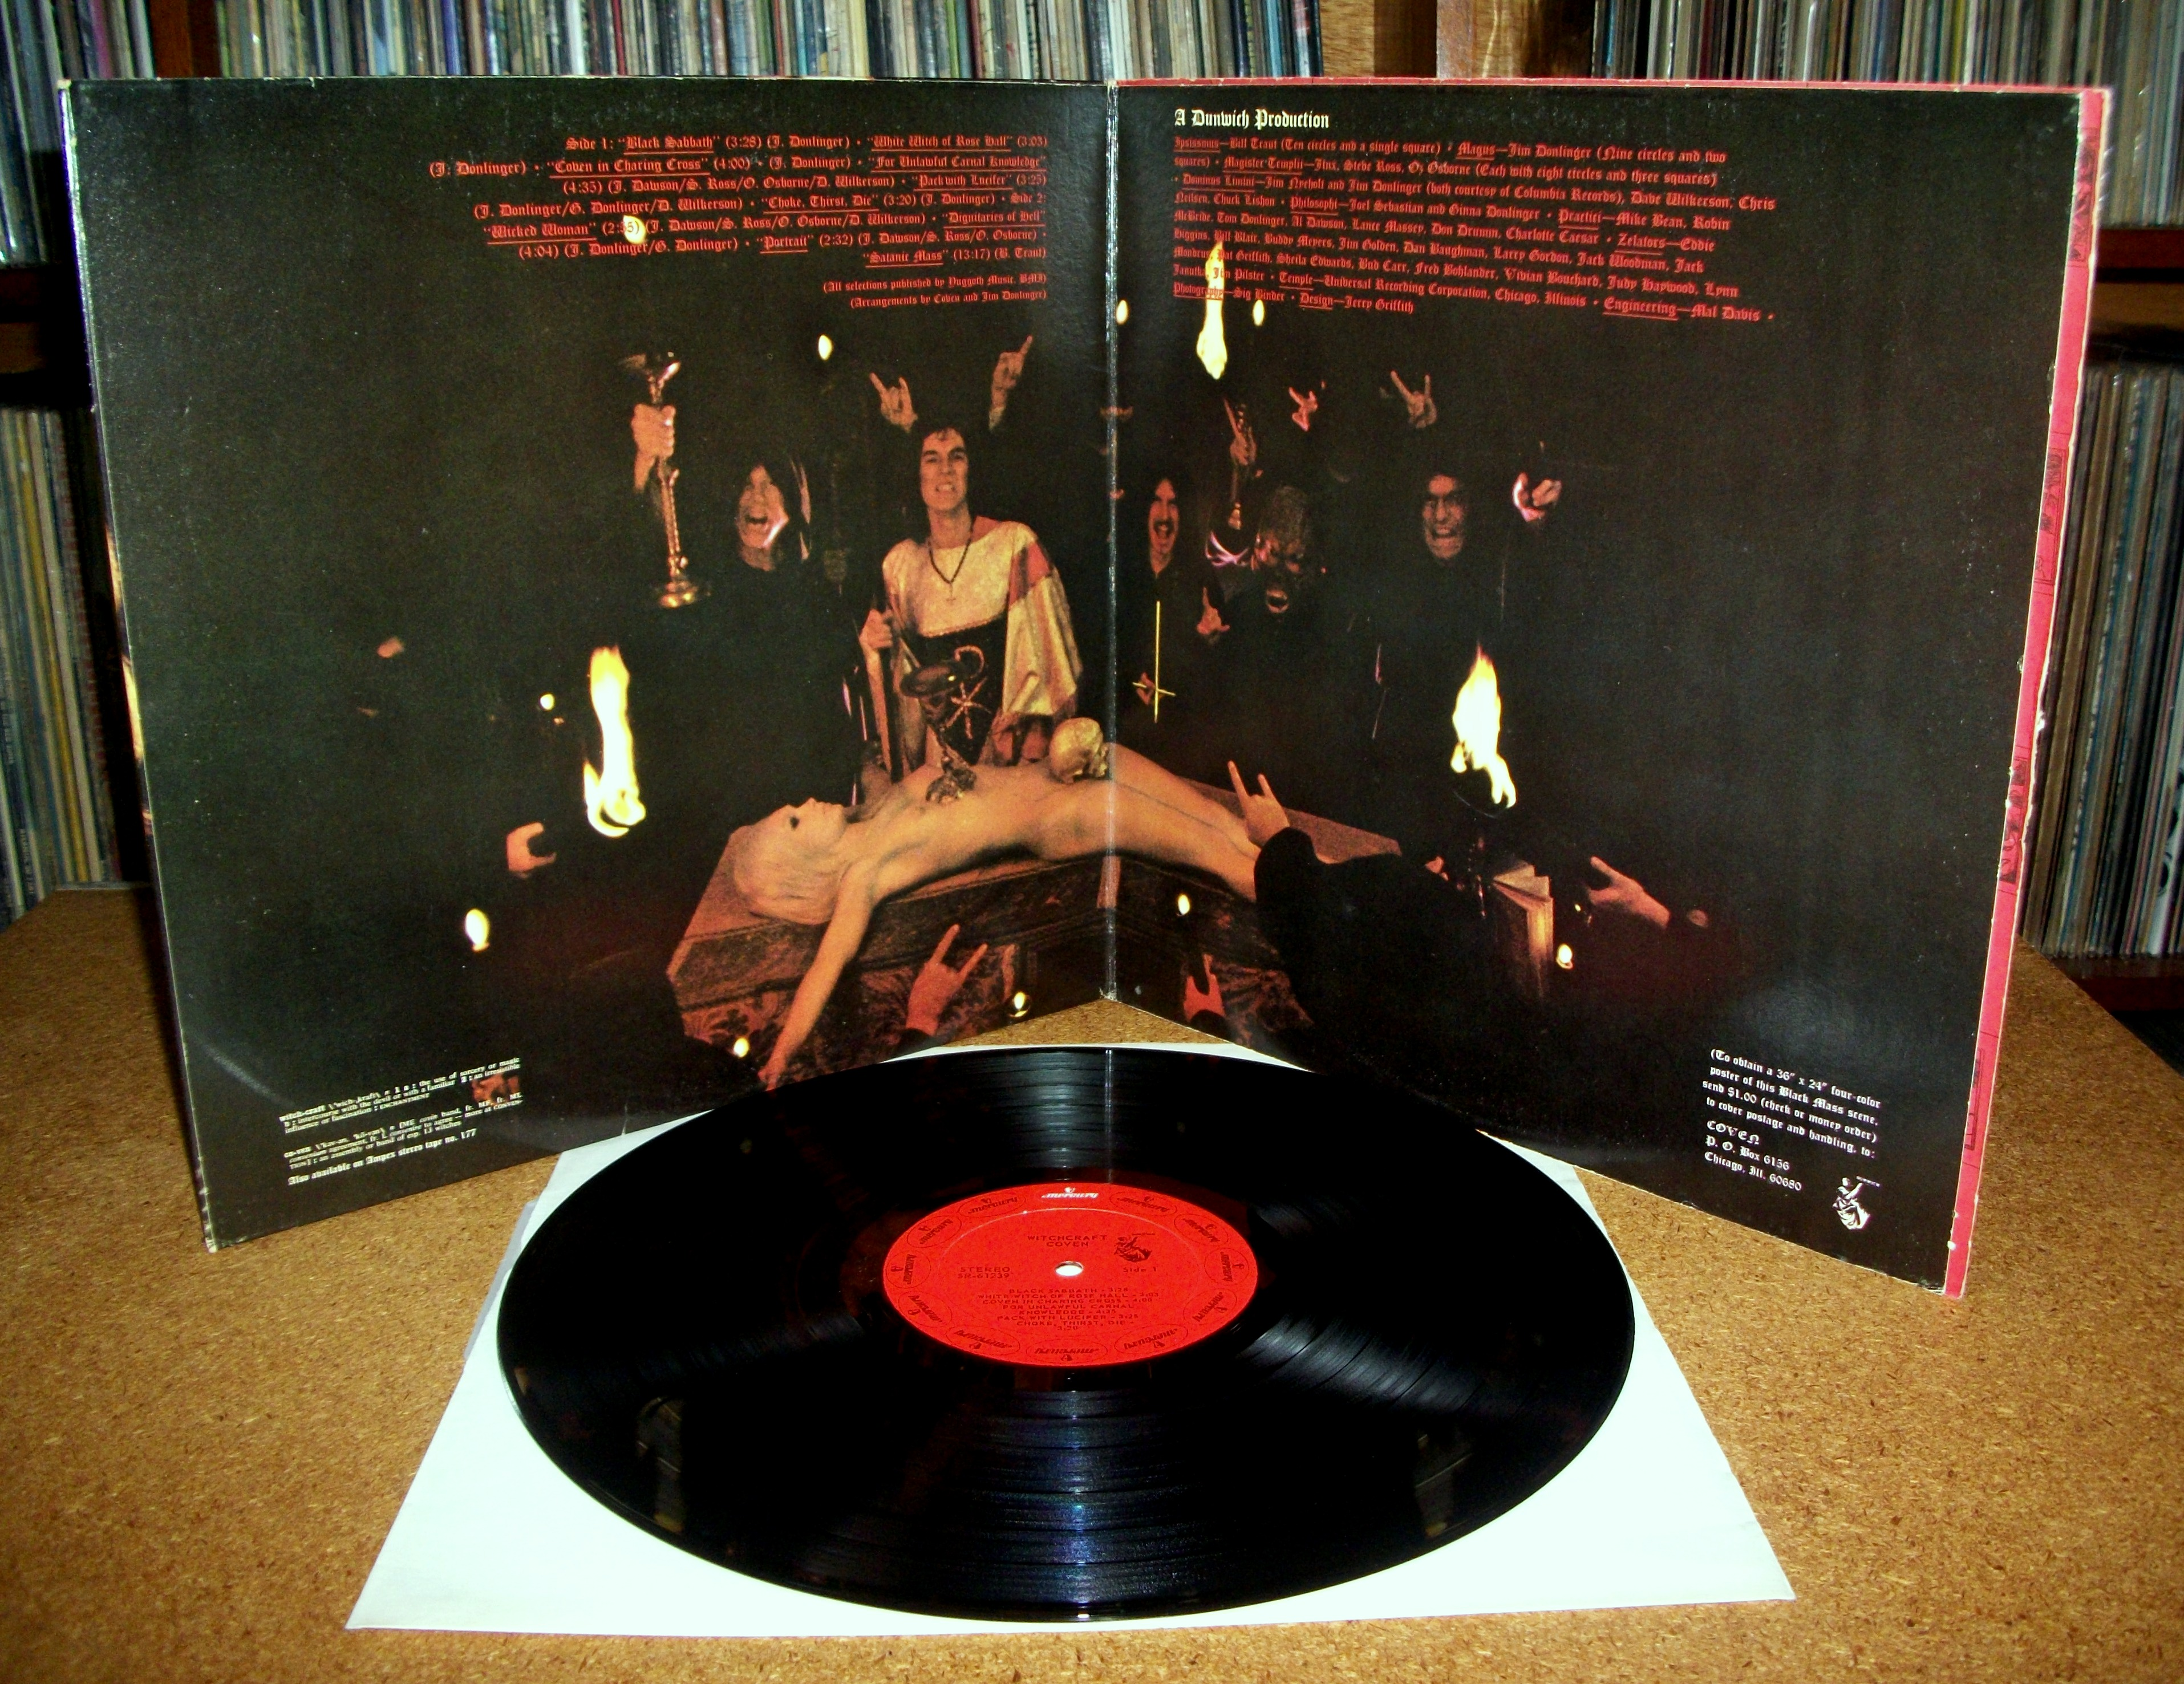 SINISTER VINYL COLLECTION: COVEN – WITCHCRAFT DESTROYS MINDS & REAPS